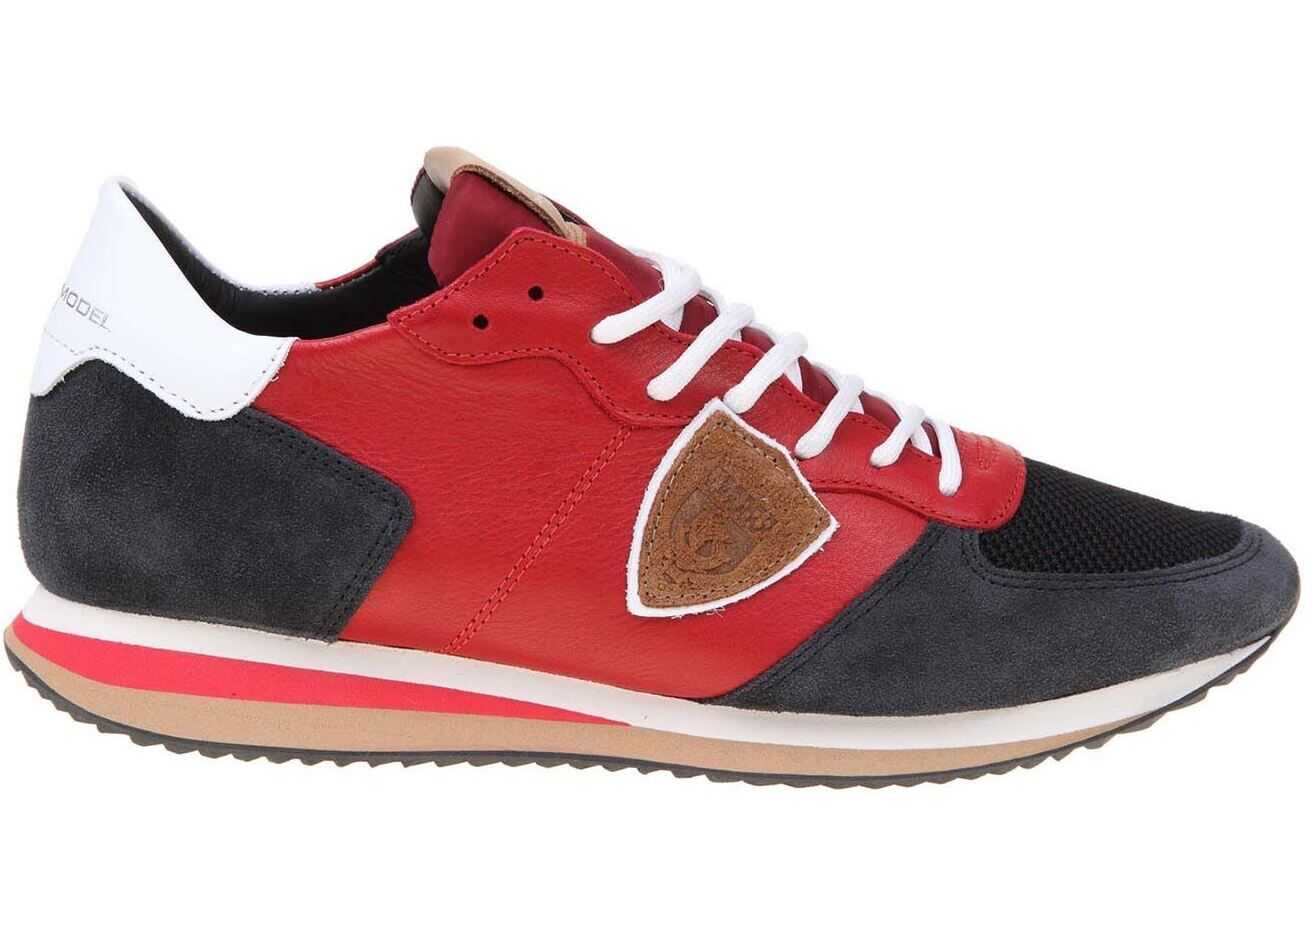 Philippe Model Trpx Sneakers In Red And Blue Red